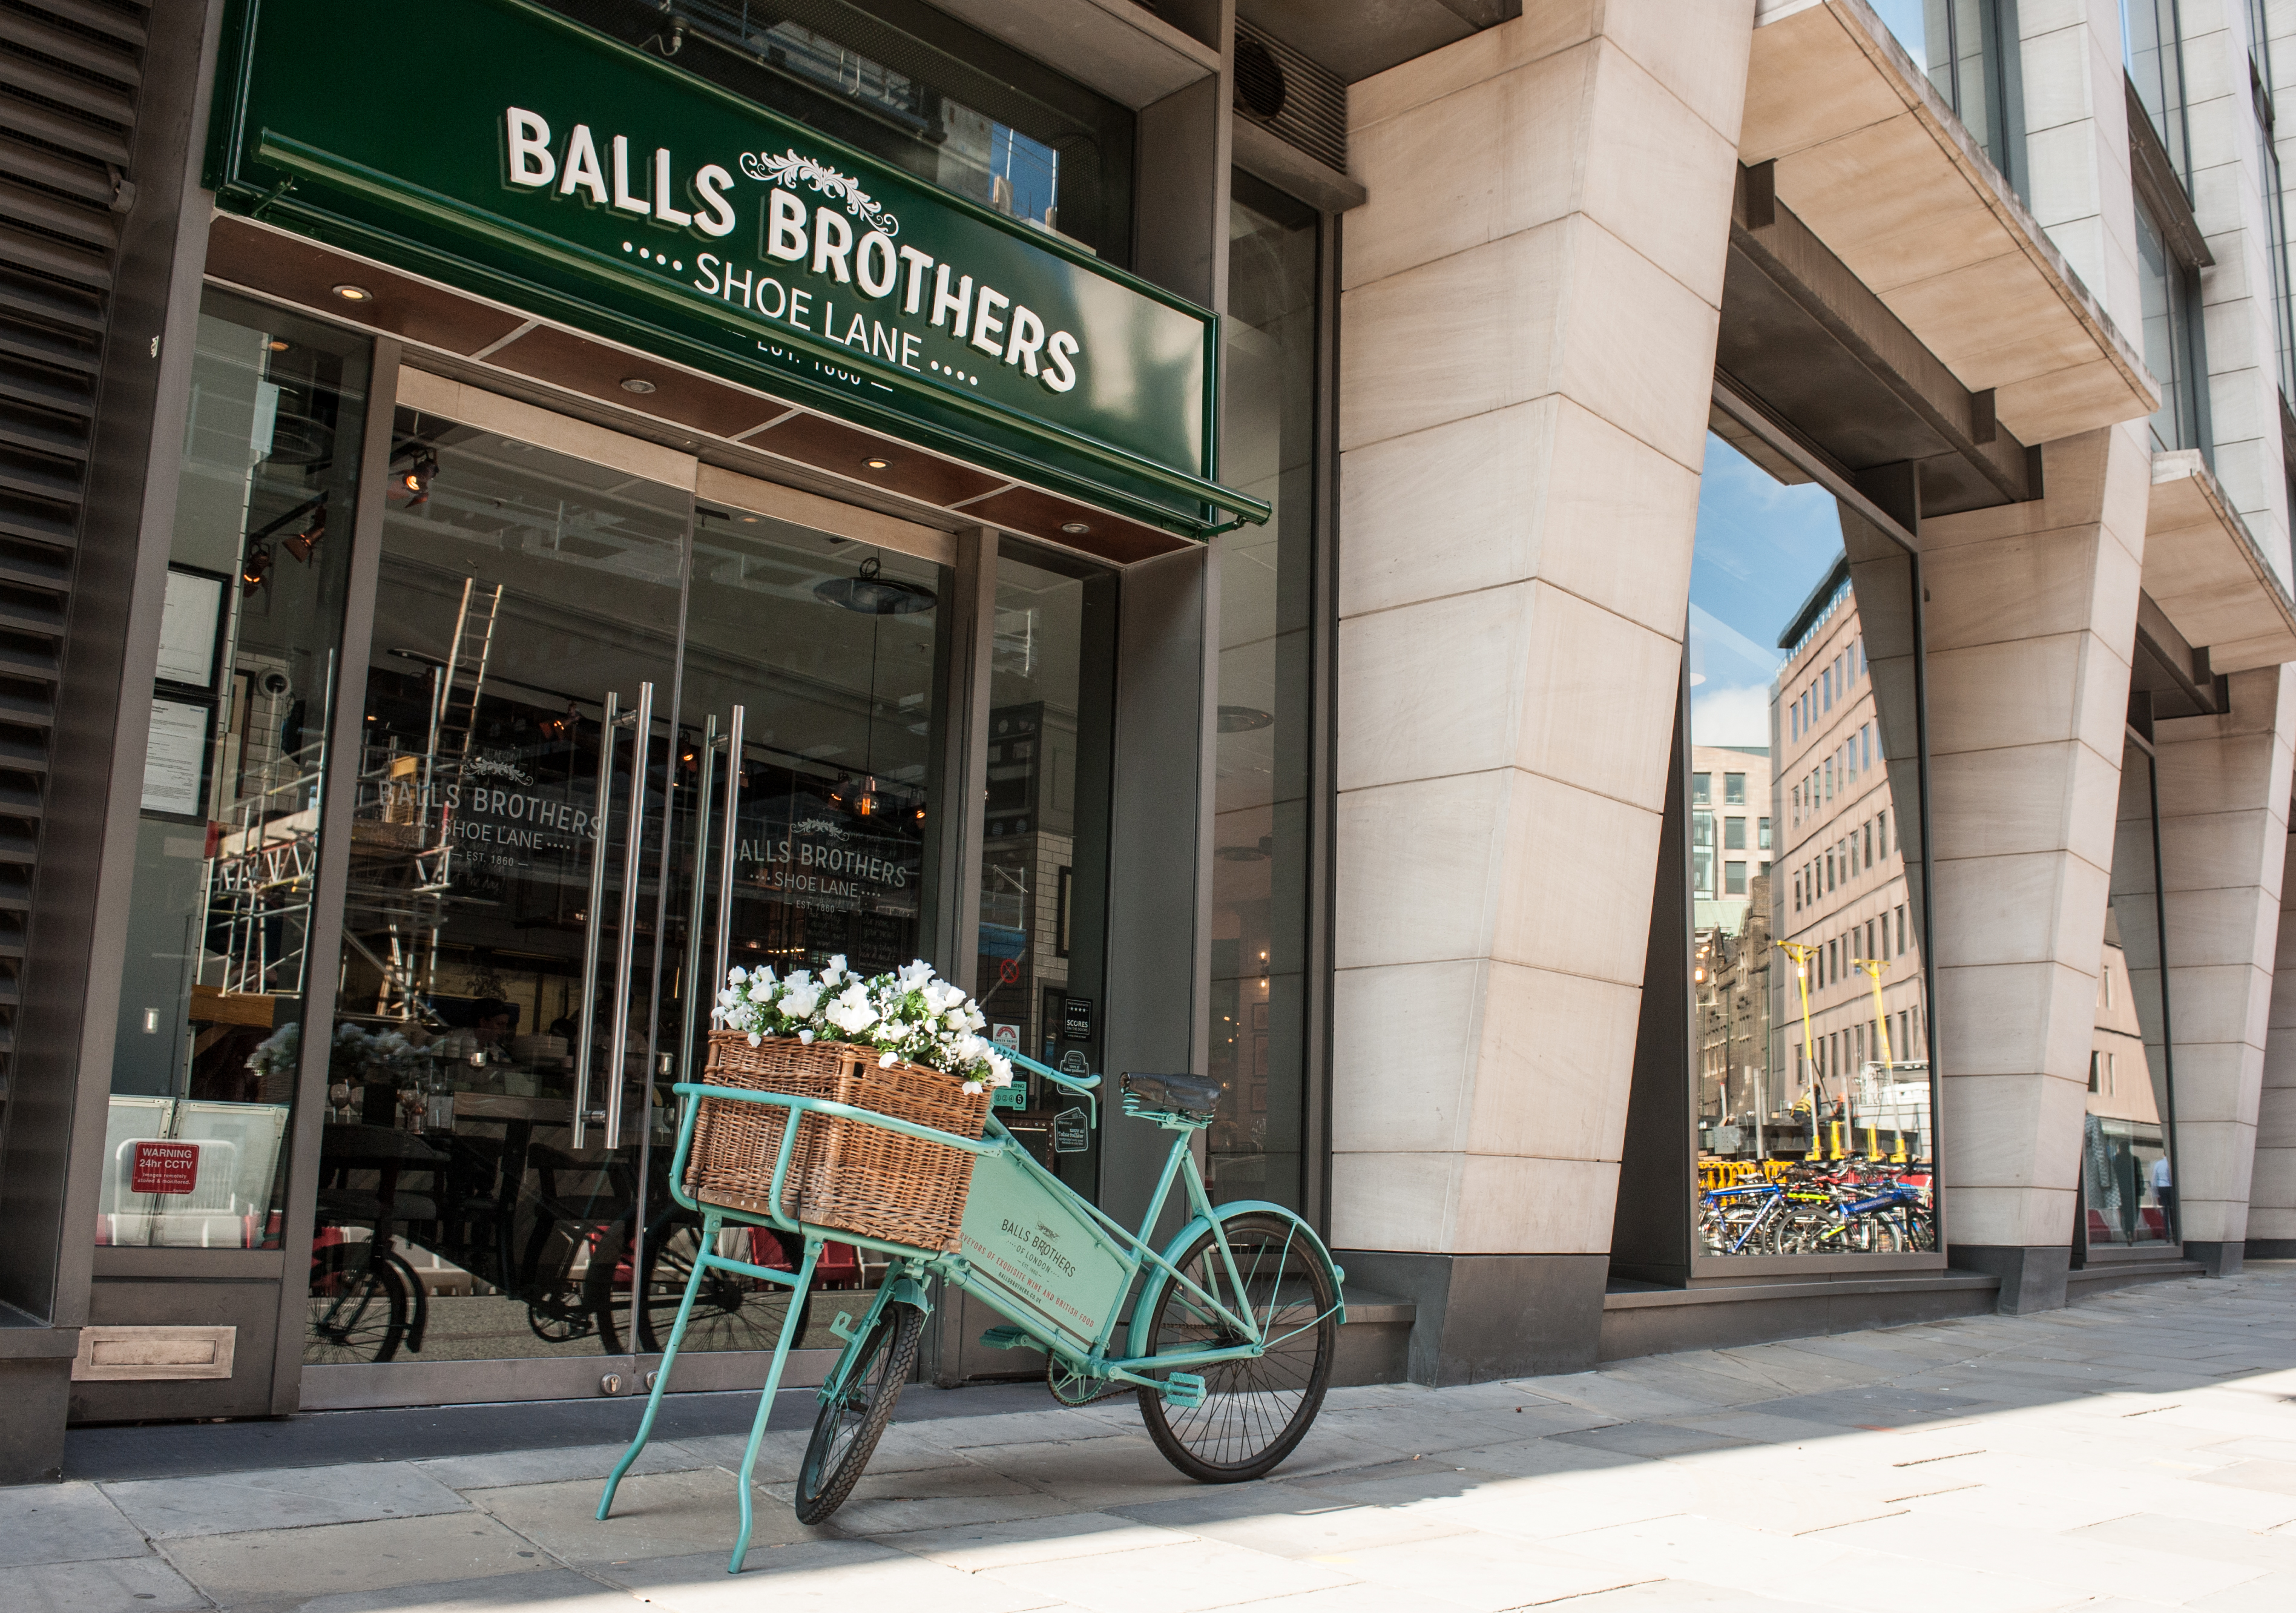 Balls Brothers Shoe Lane